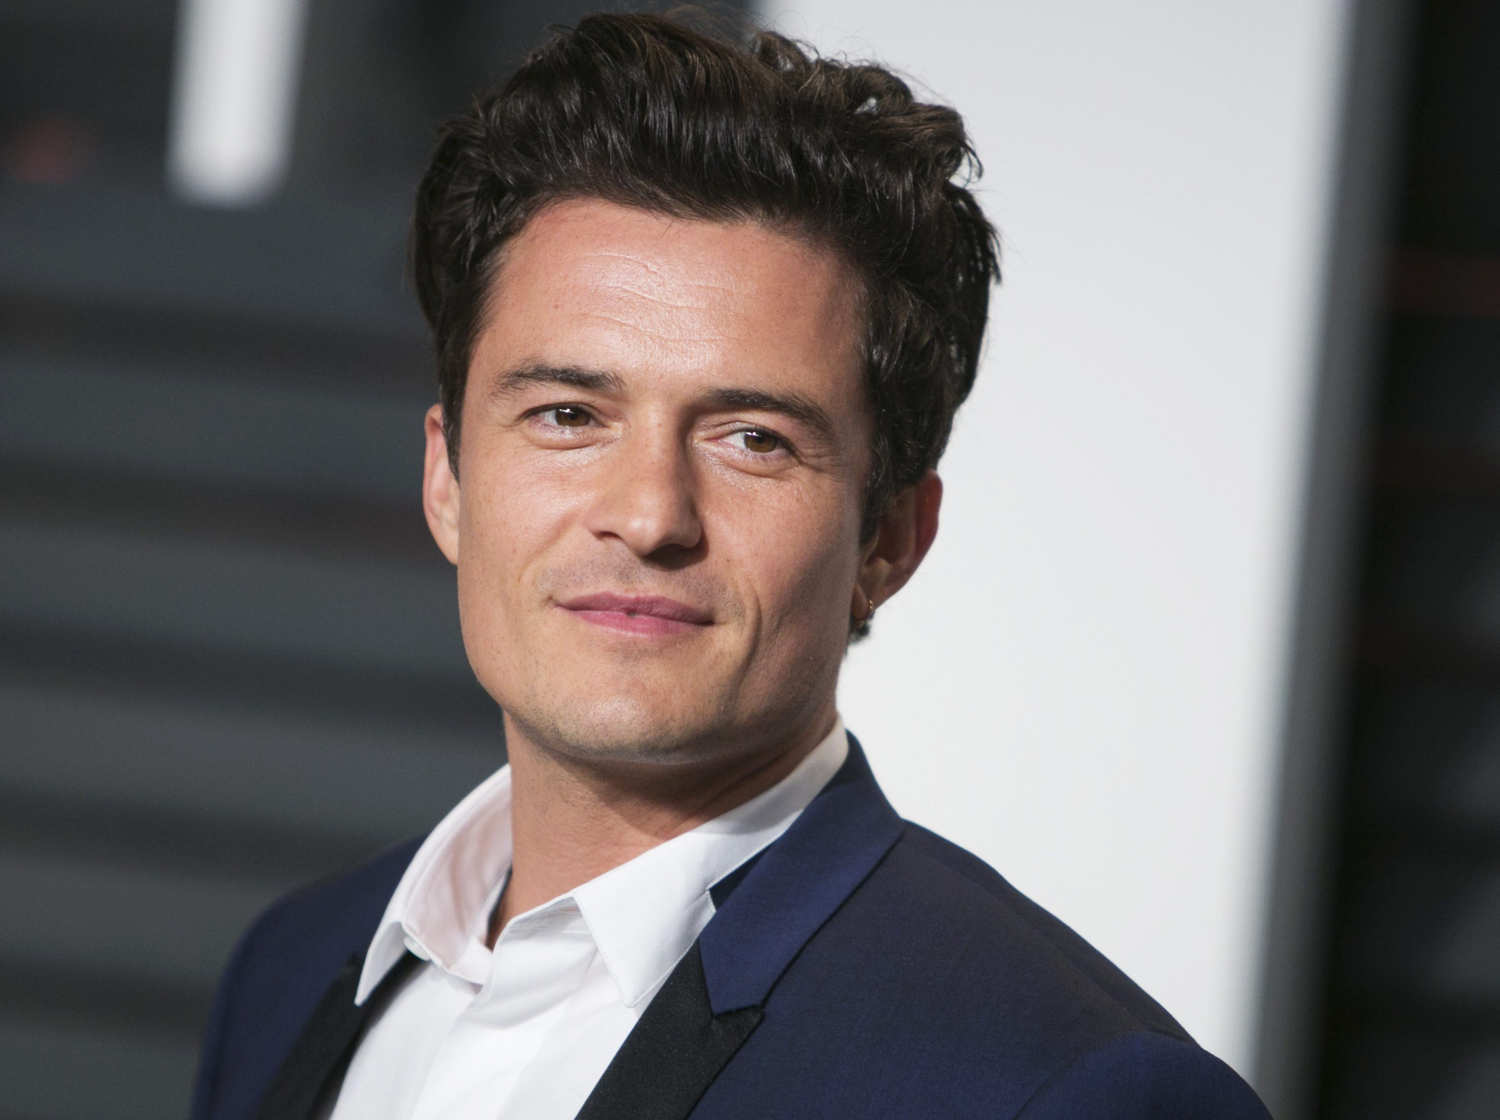 Dylan Farrow Images >> Orlando Bloom strips naked with Katy Perry | Hits 96